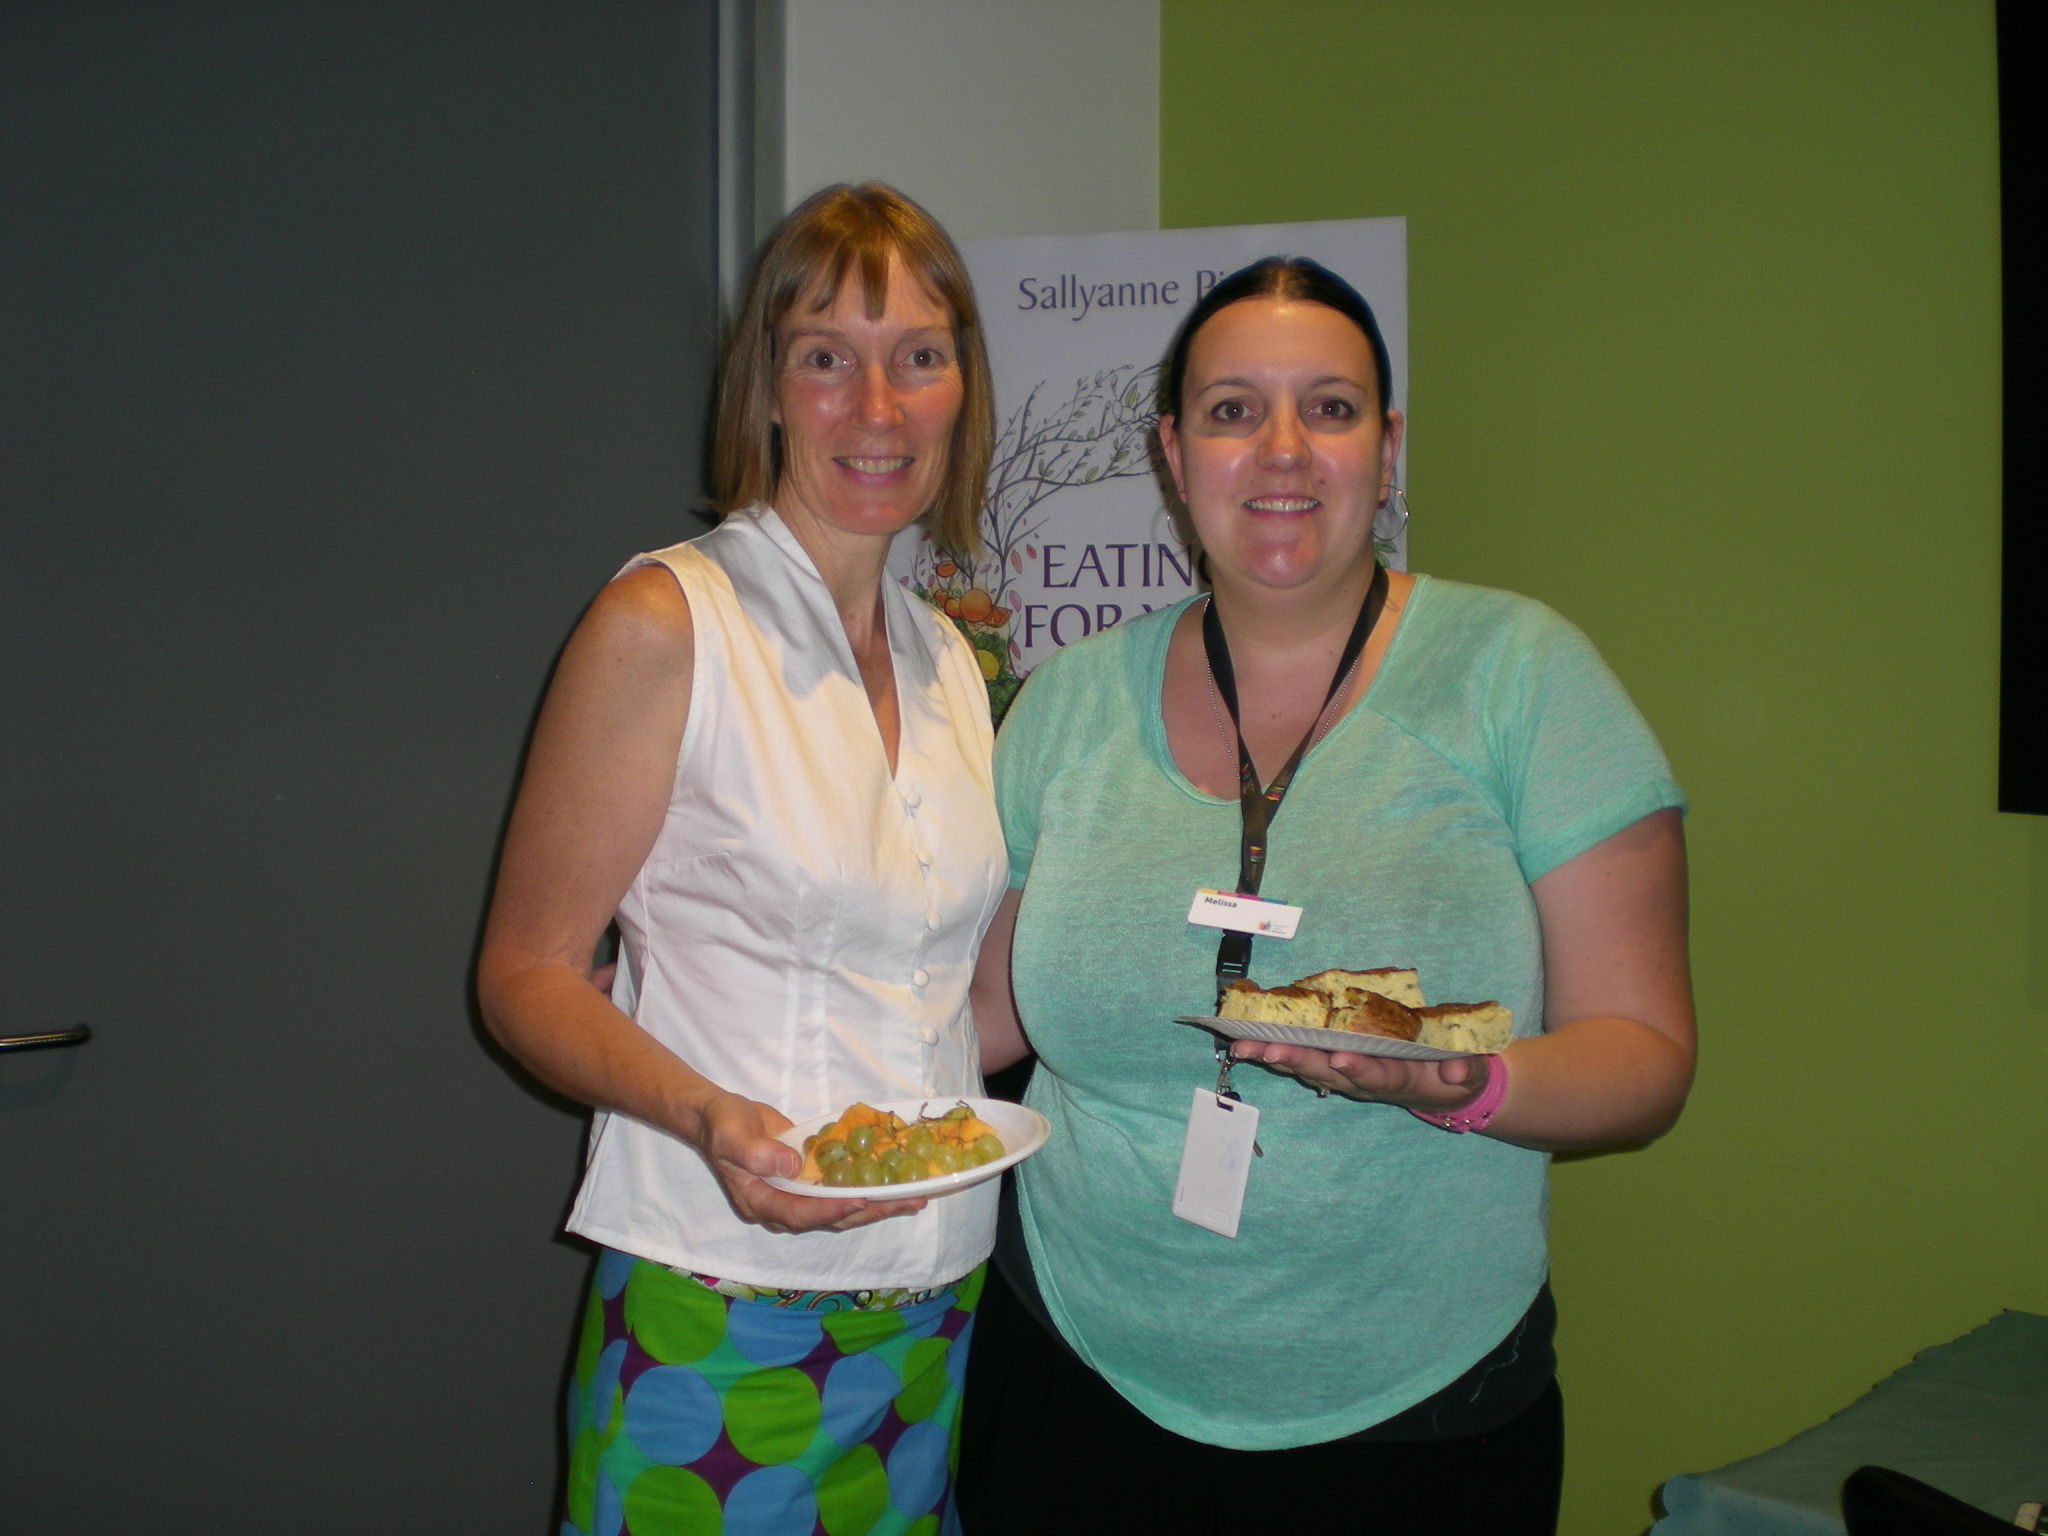 Samples of the great morning tea at Shepparton Library